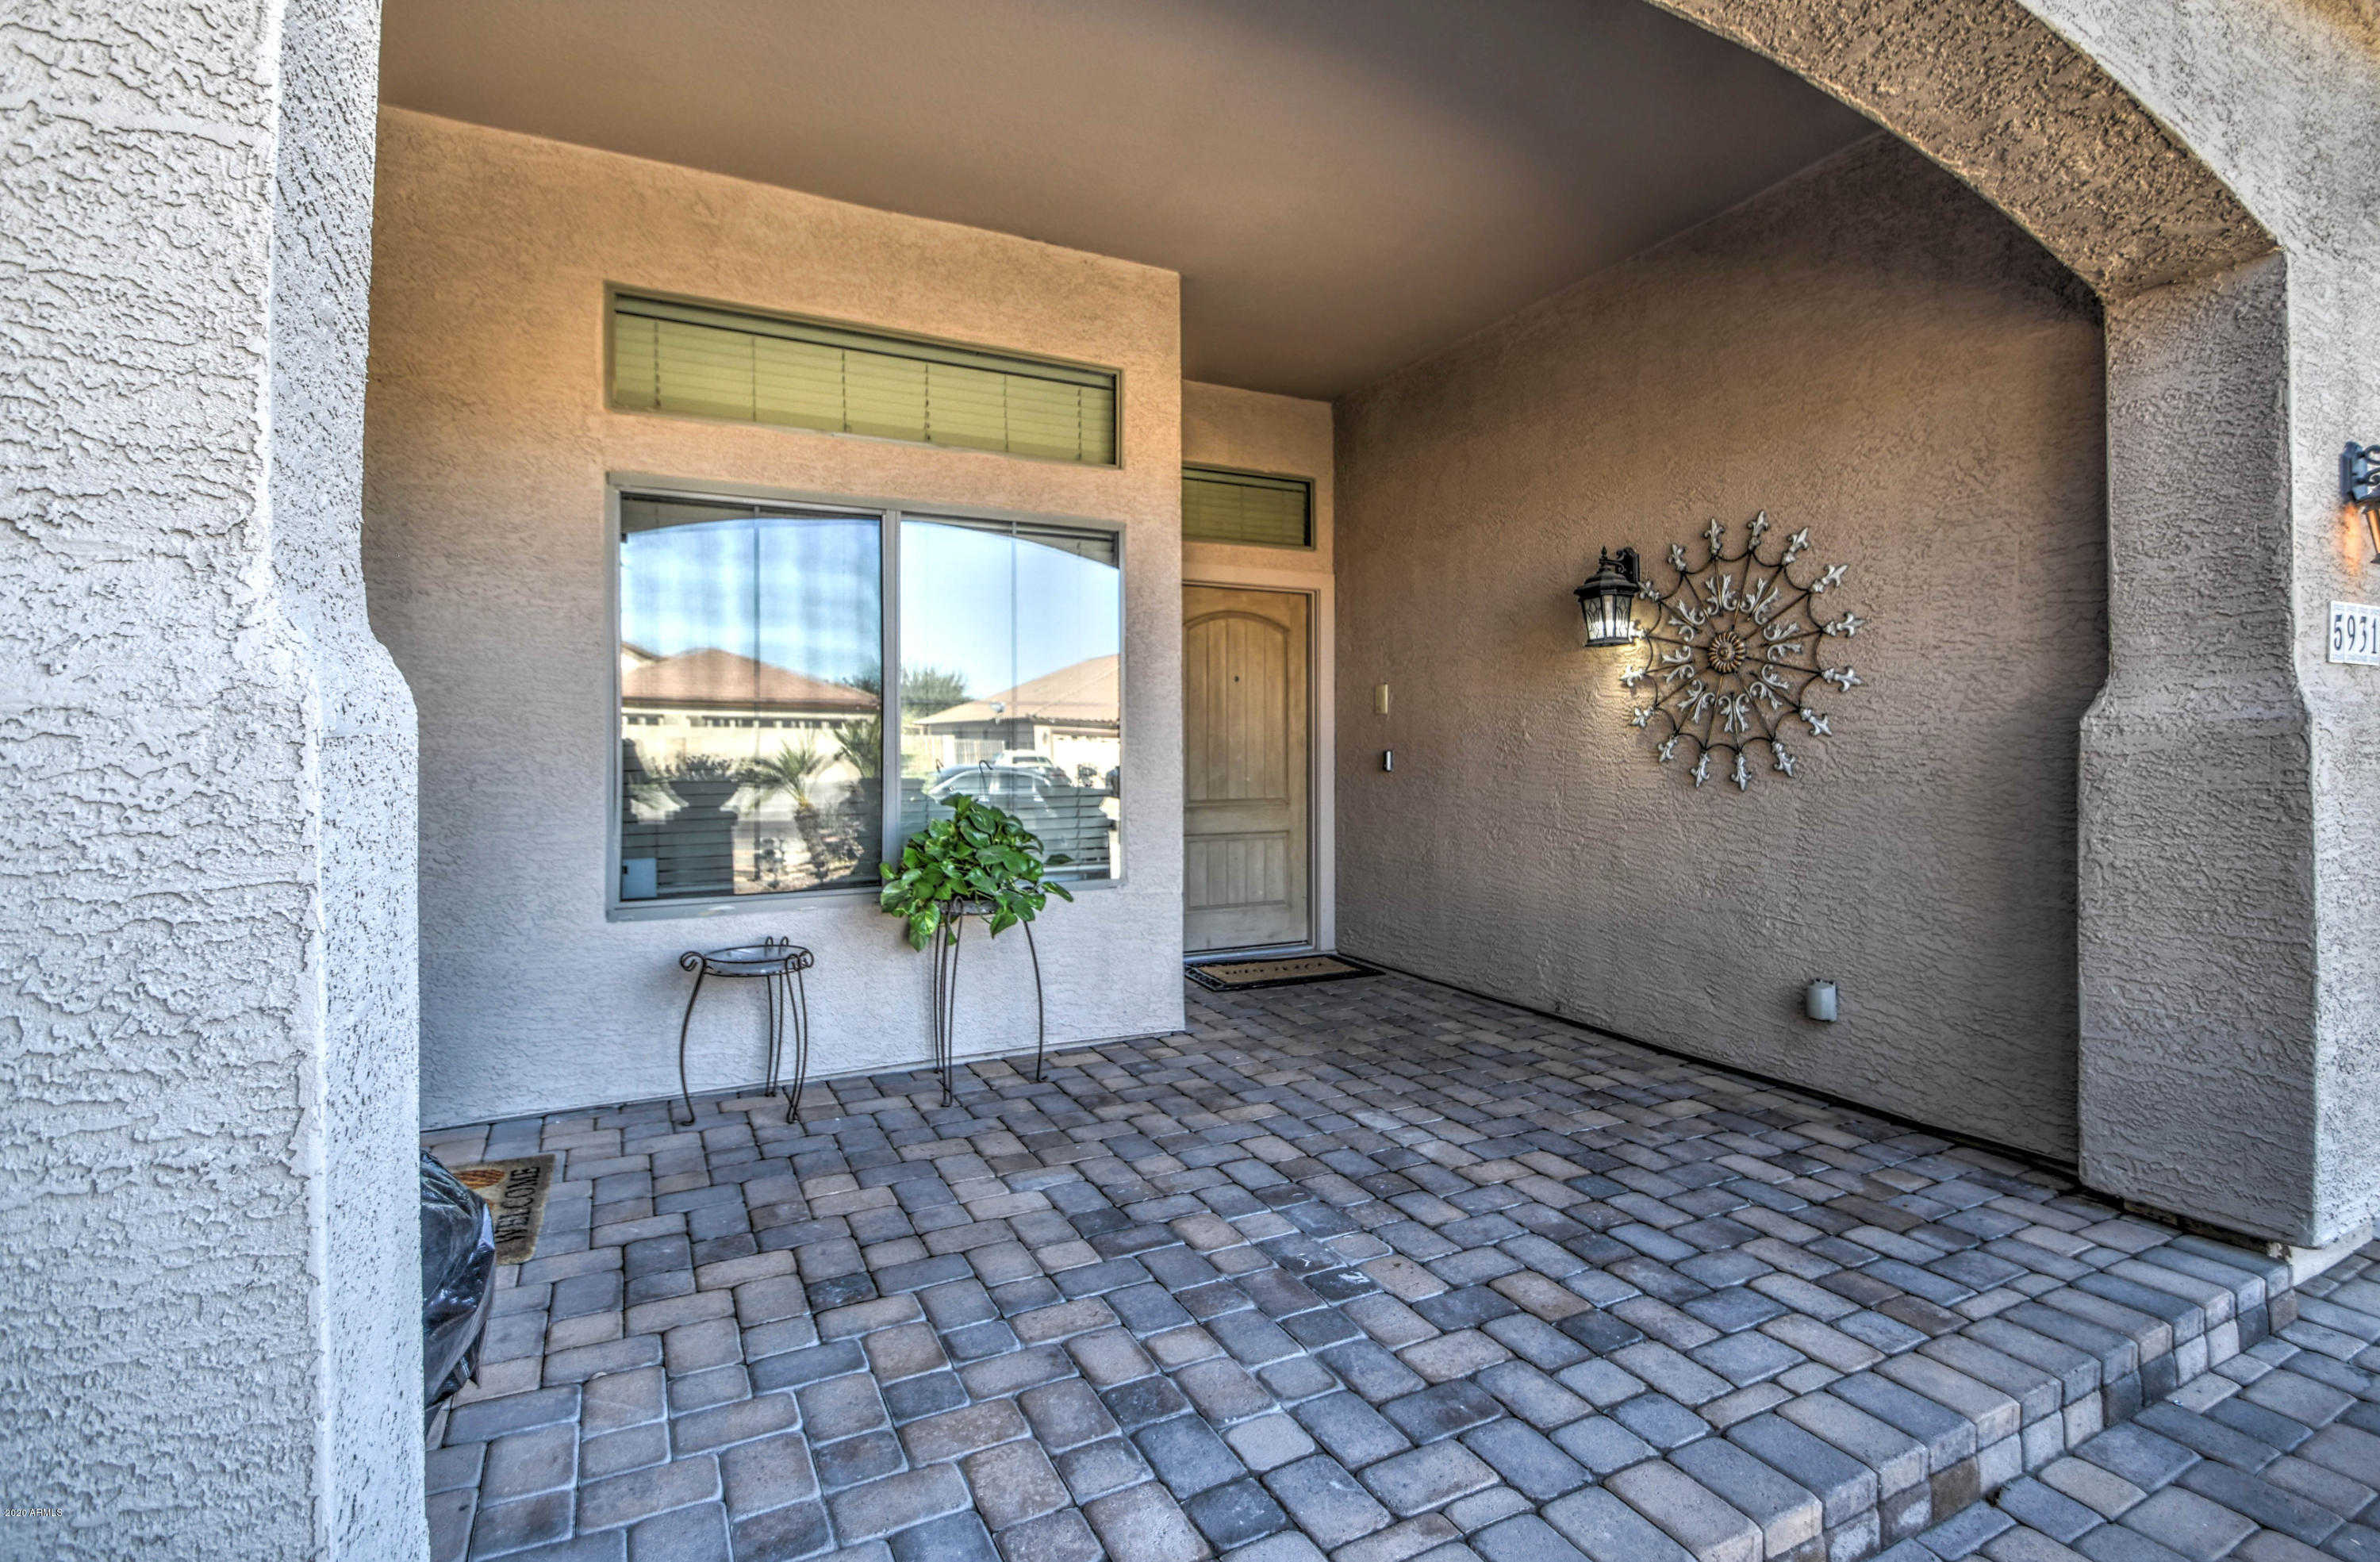 $445,000 - 5Br/3Ba - Home for Sale in Cholla Cove, Glendale